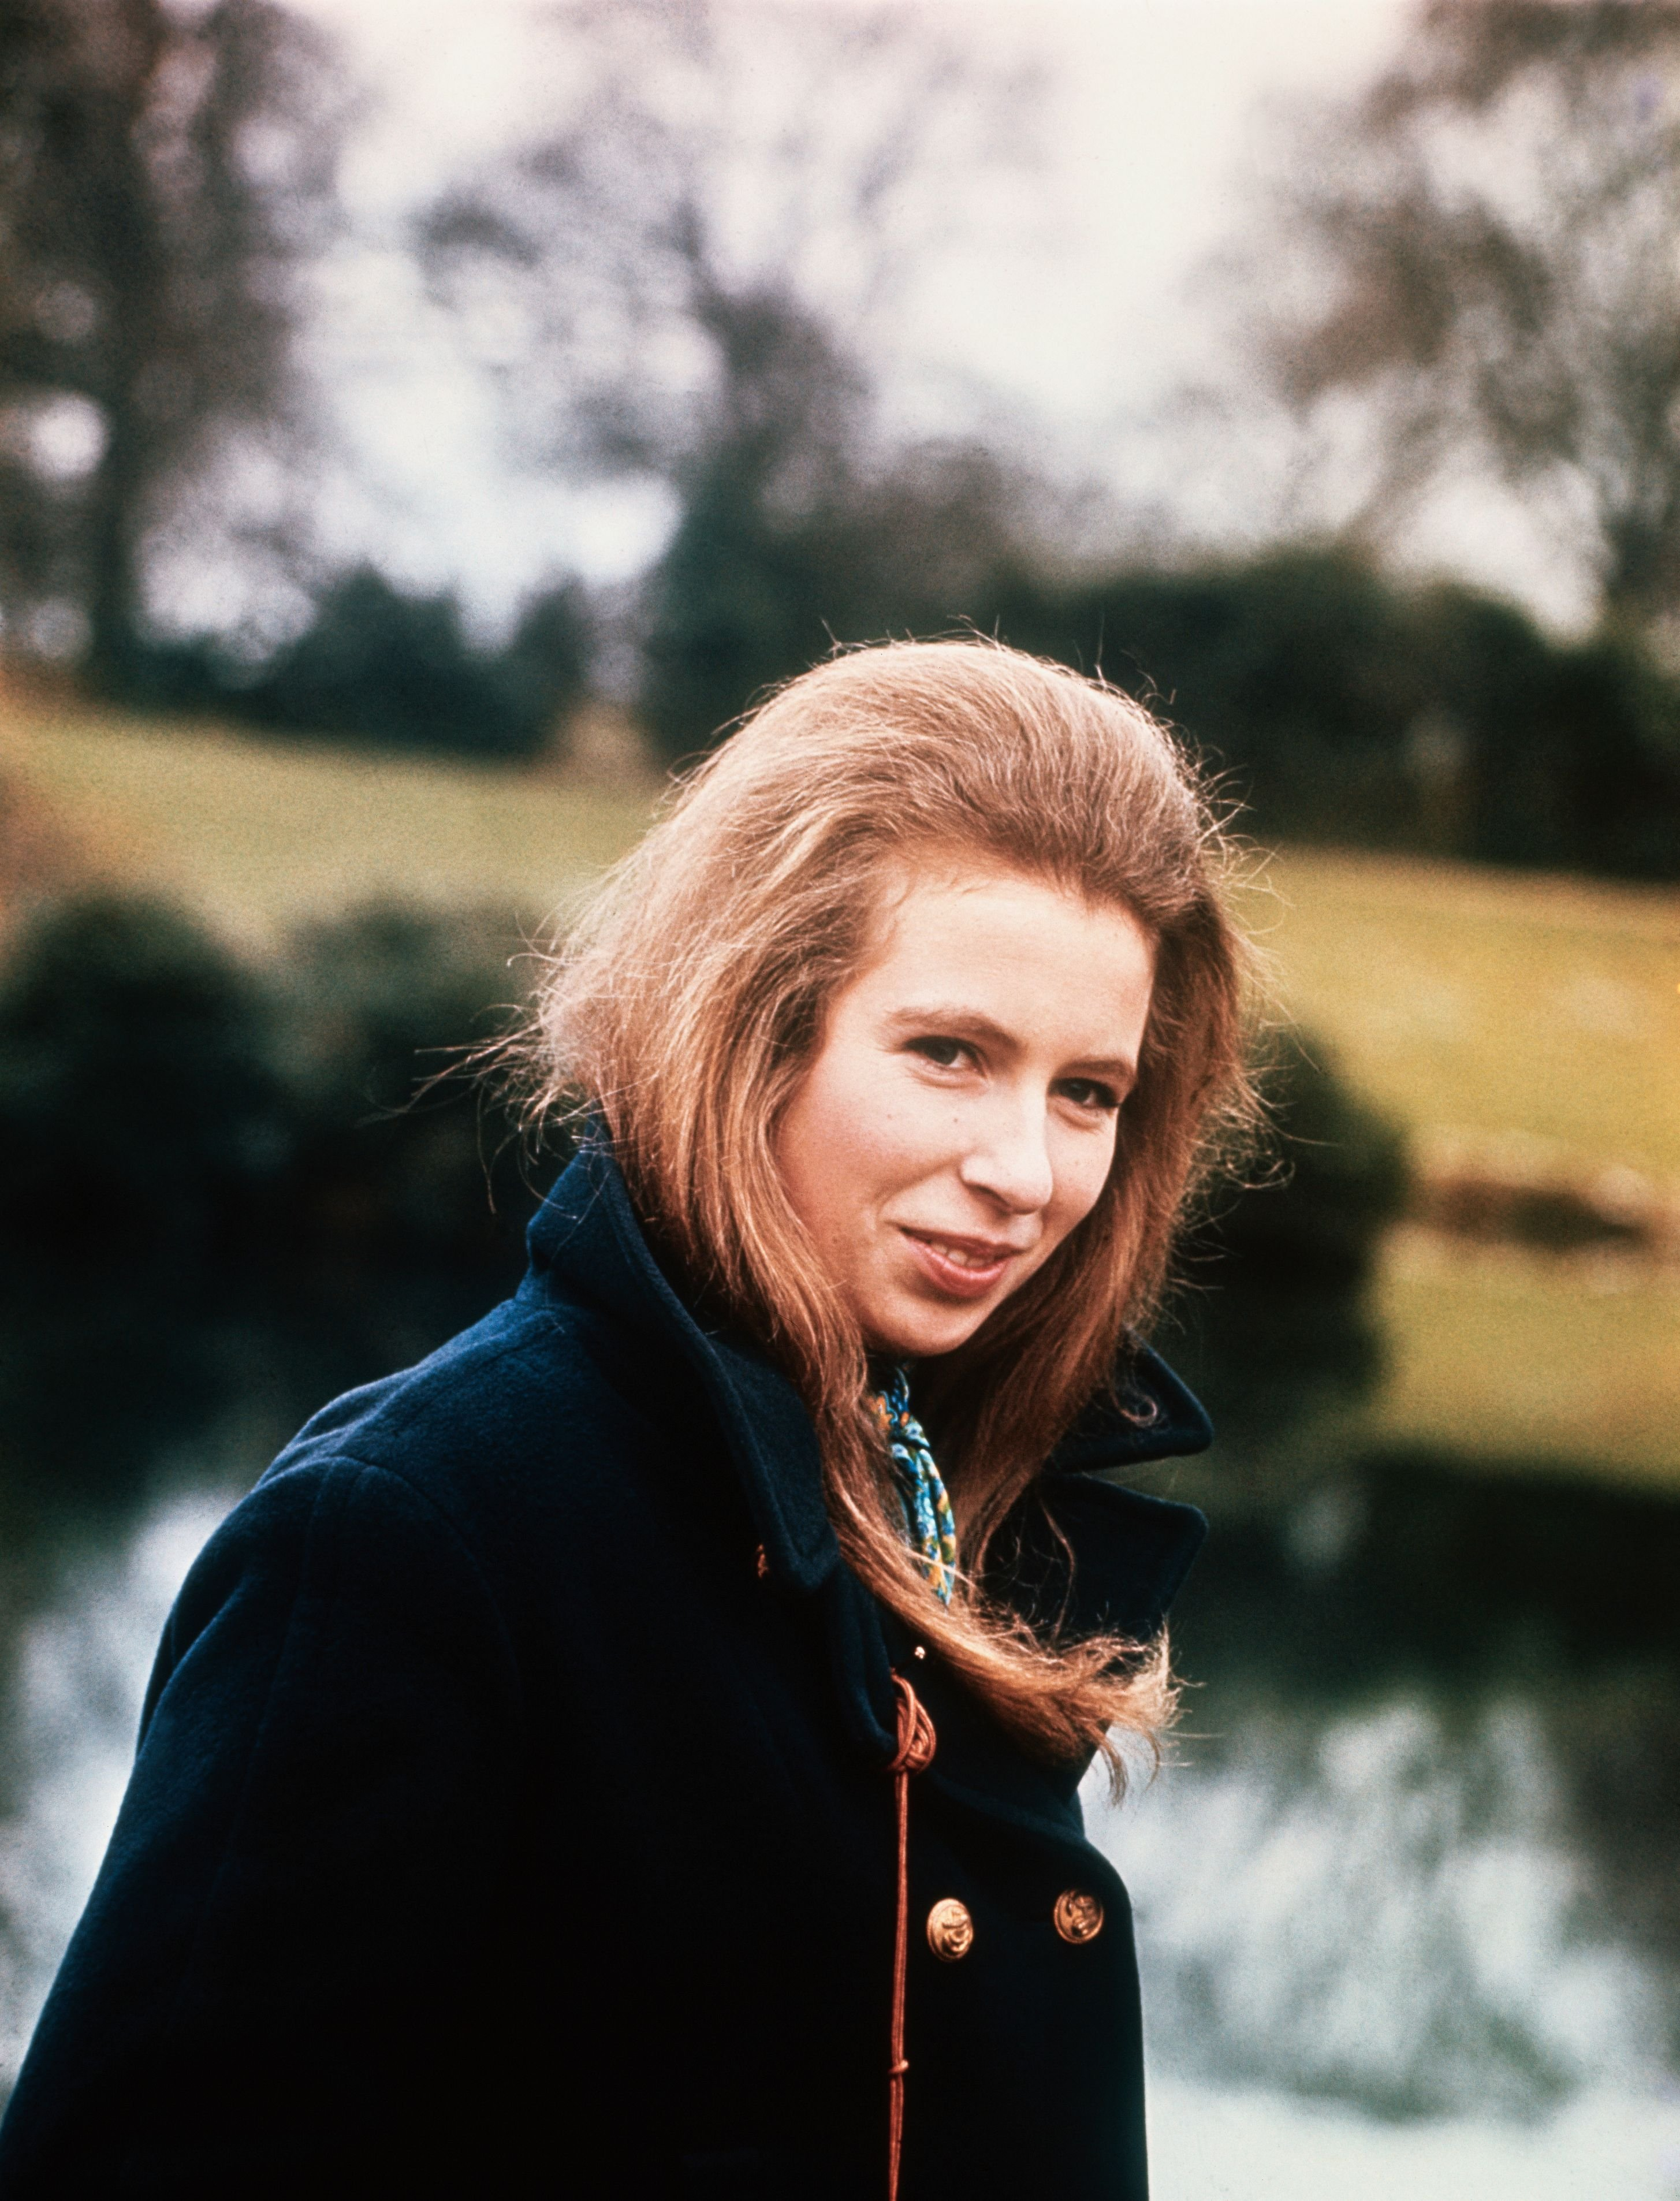 Princess Anne, 19, walking the grounds of Sandringham, the Royal Family's country residence | Photo: Getty Images